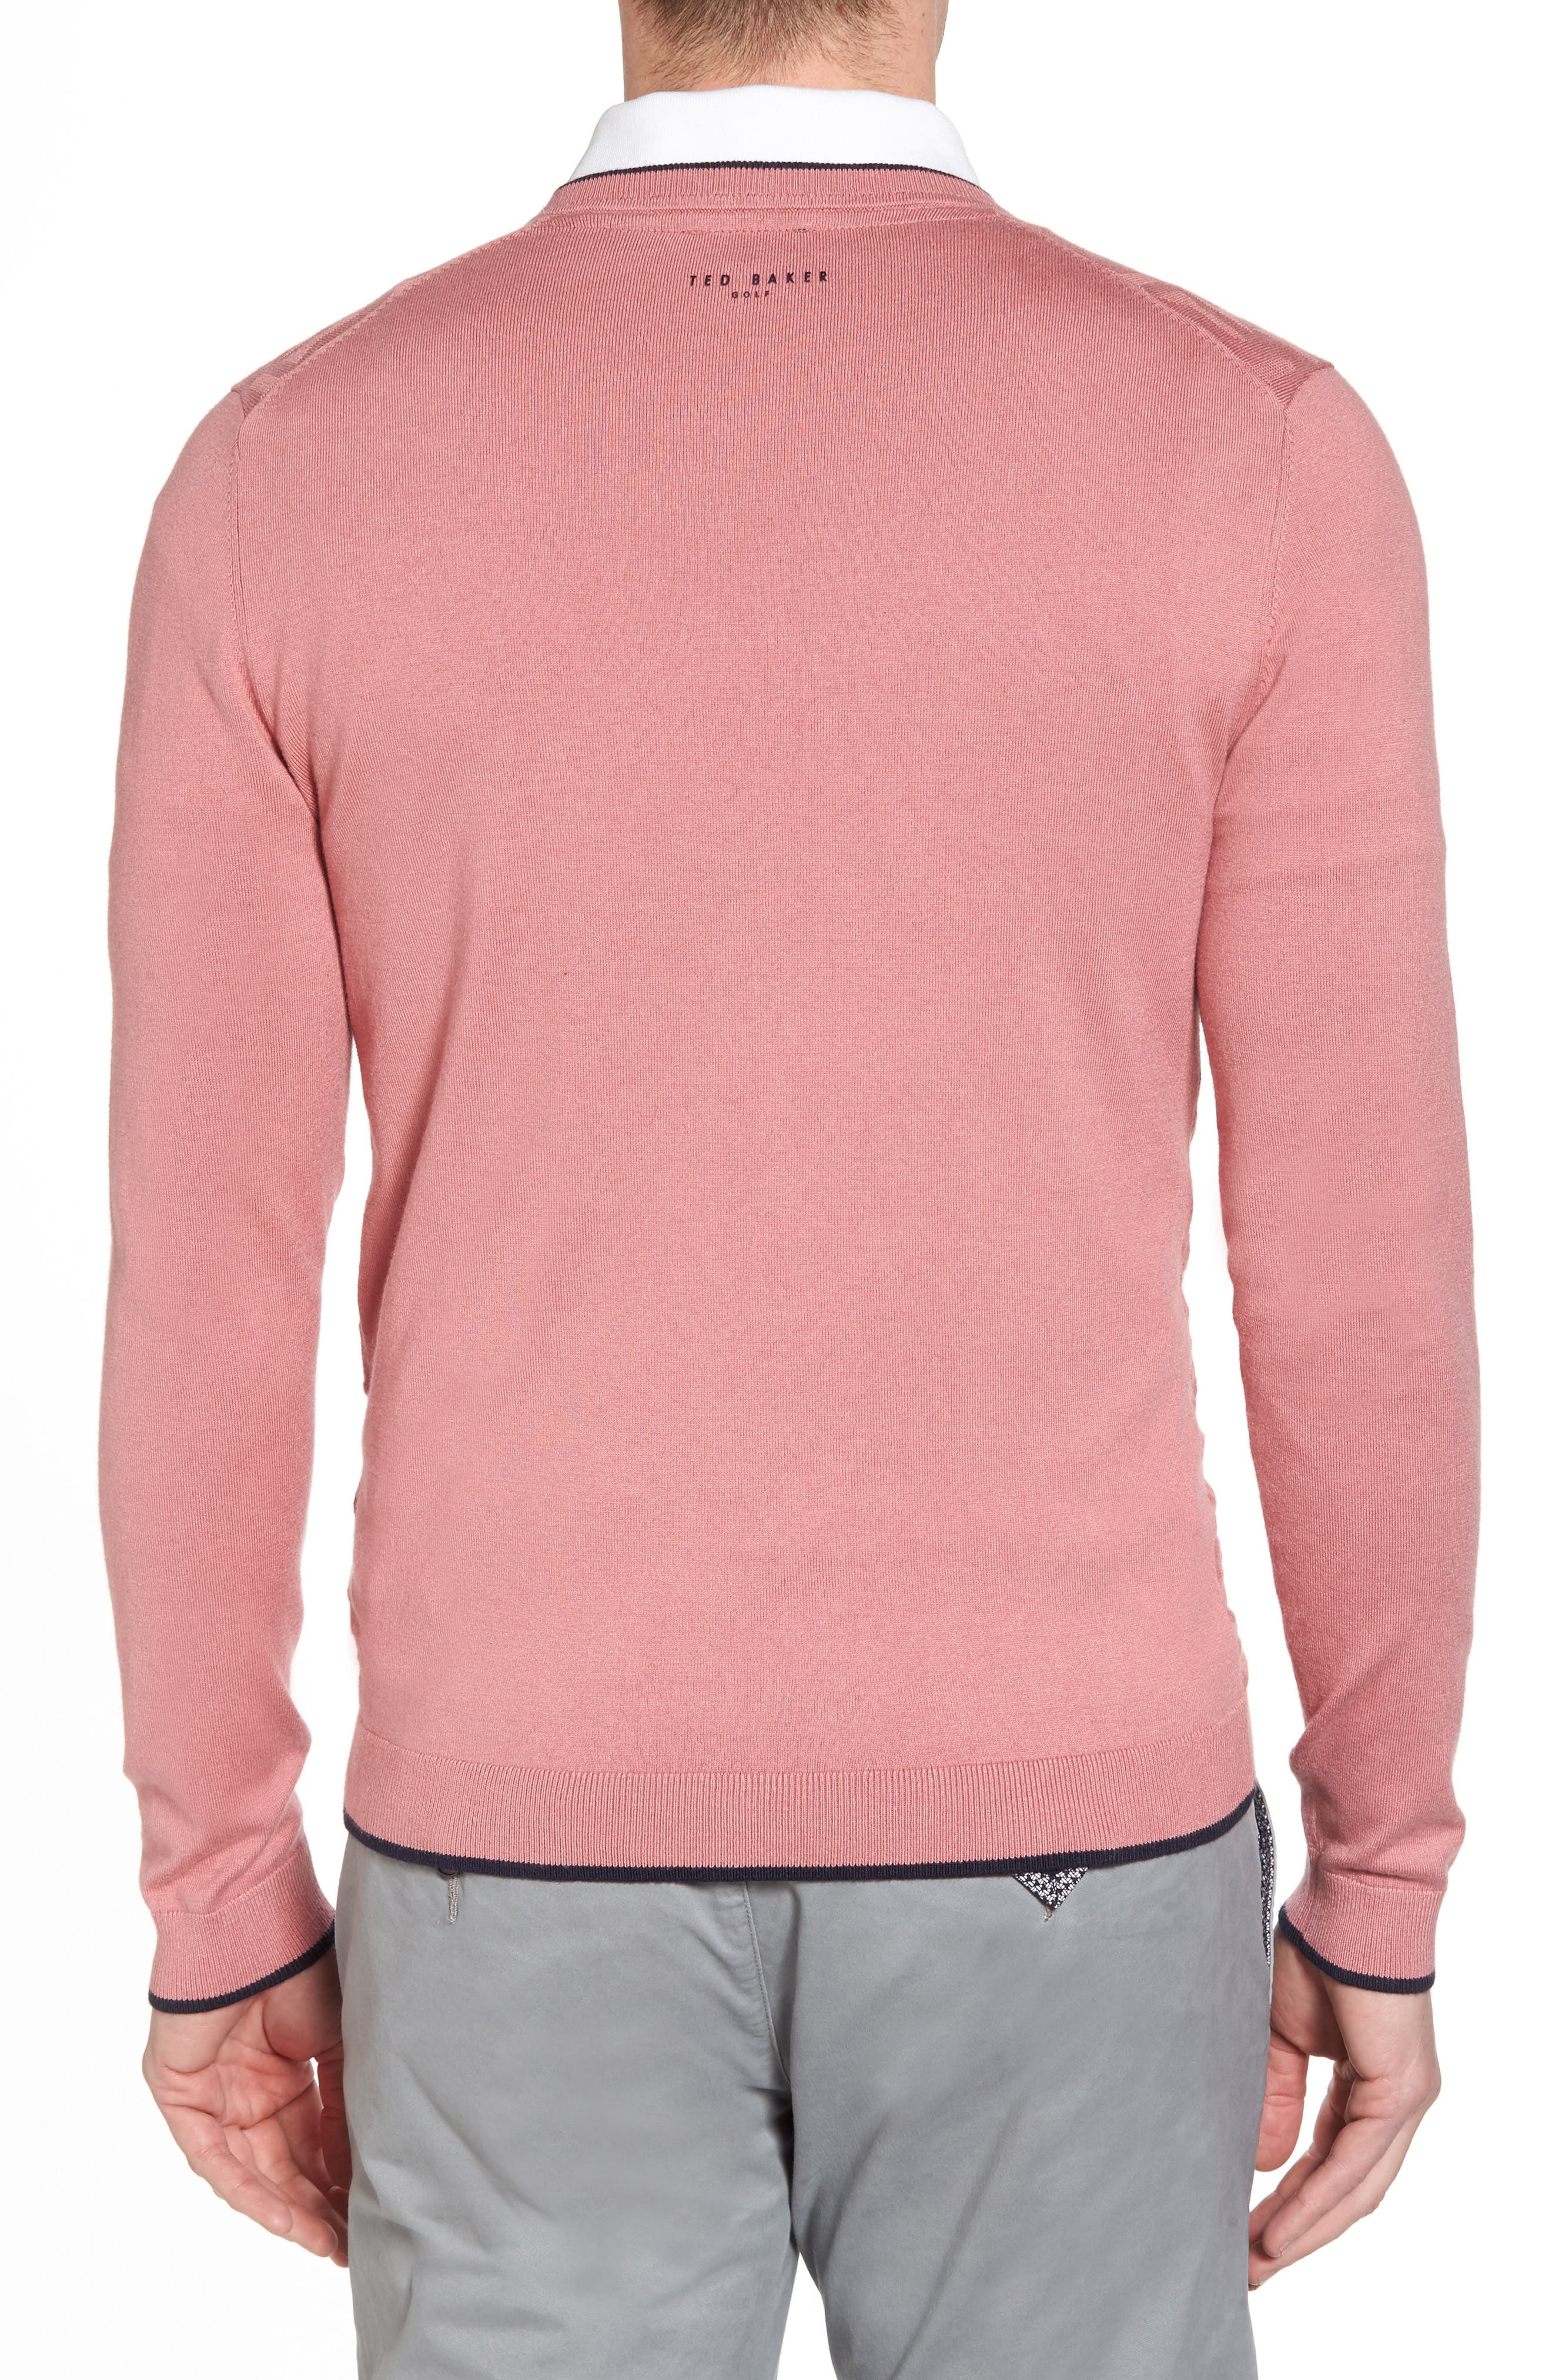 Armstro Tipped Golf Tee Sweater,                             Alternate thumbnail 2, color,                             Mid Pink